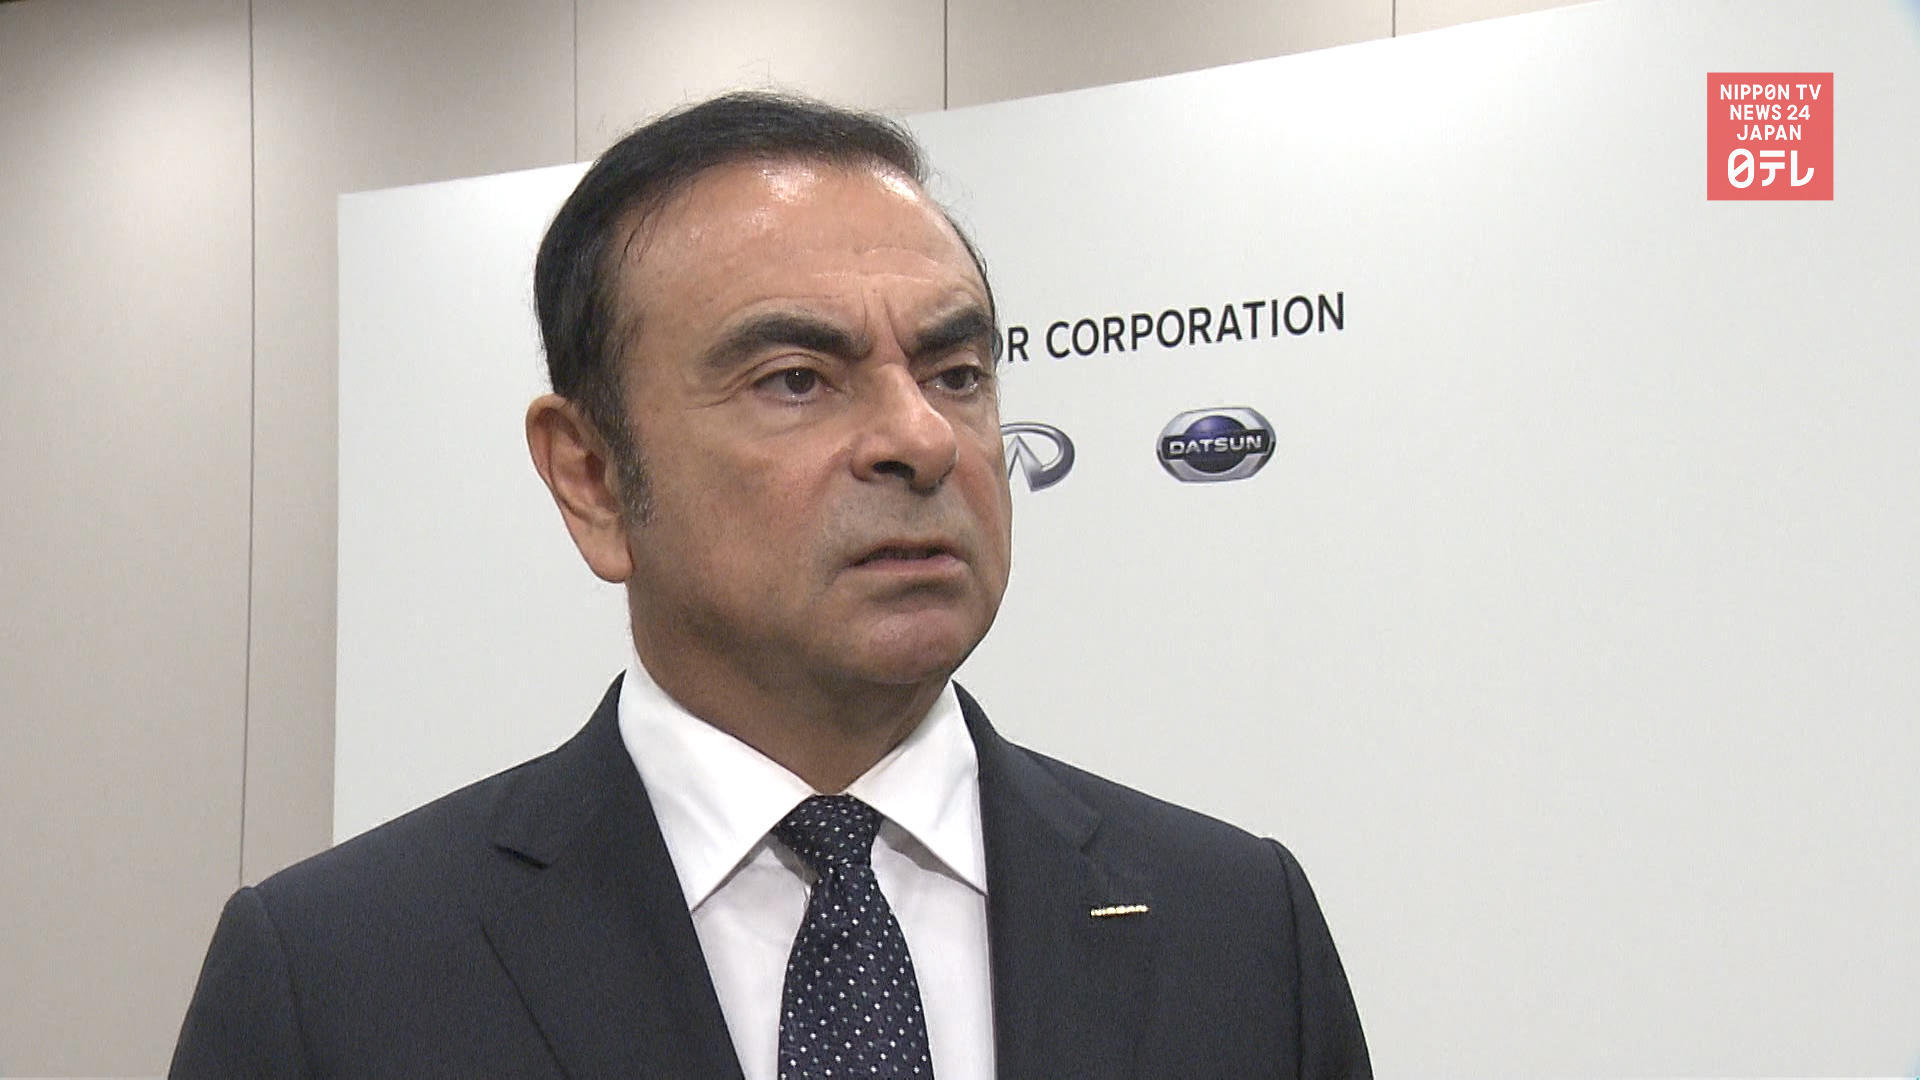 Prosecutors search Ghosn's Tokyo residence